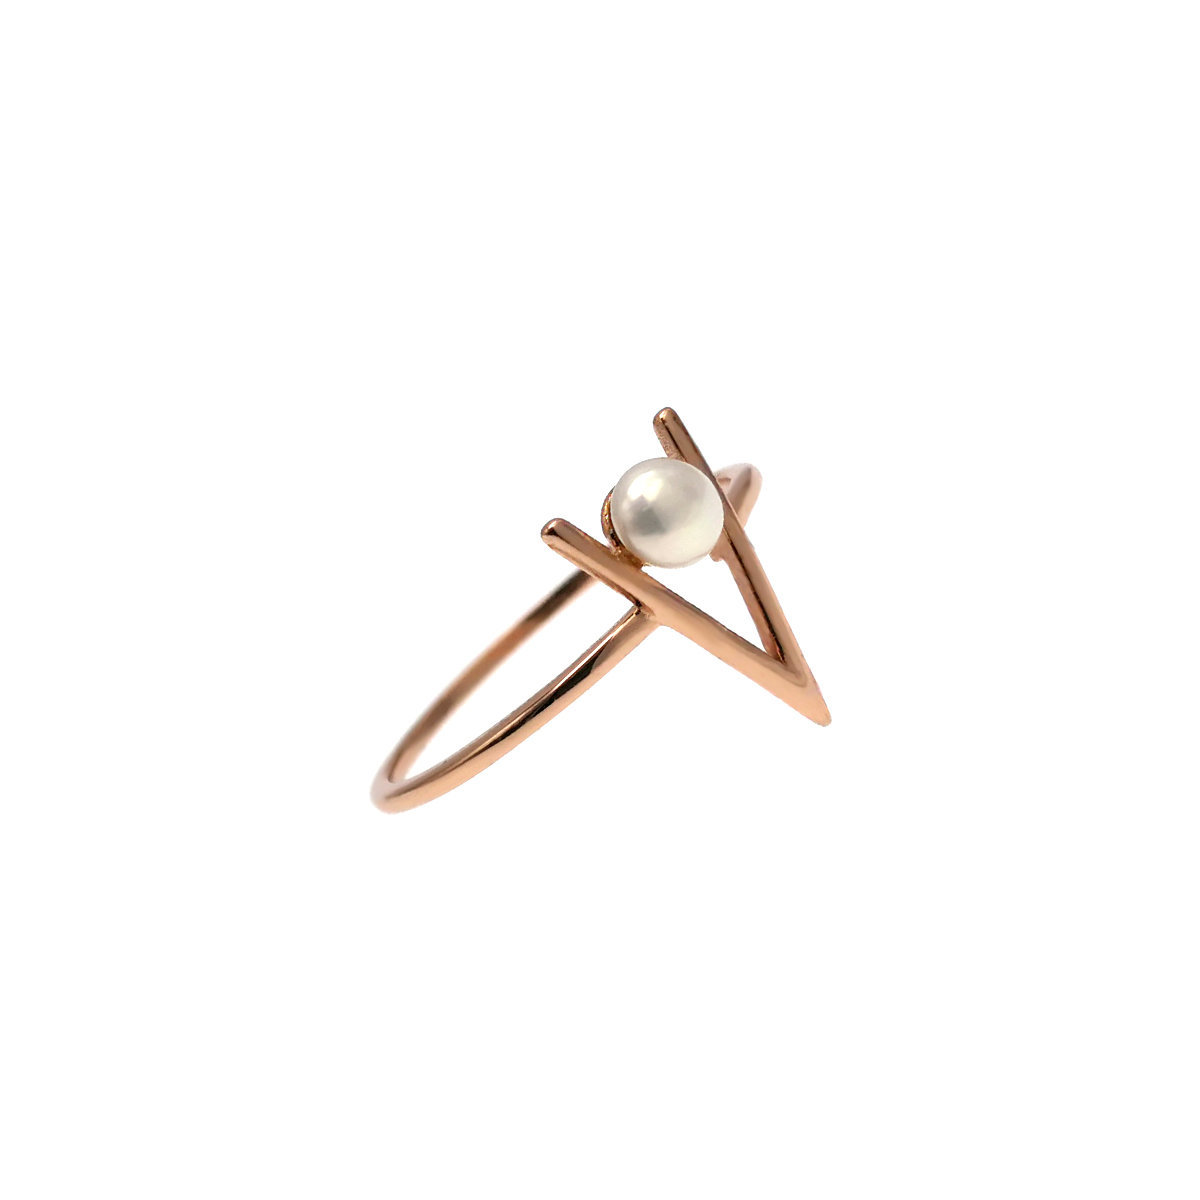 V-Rose Gold plated 925 silver with Cultured fresh water pearl ring